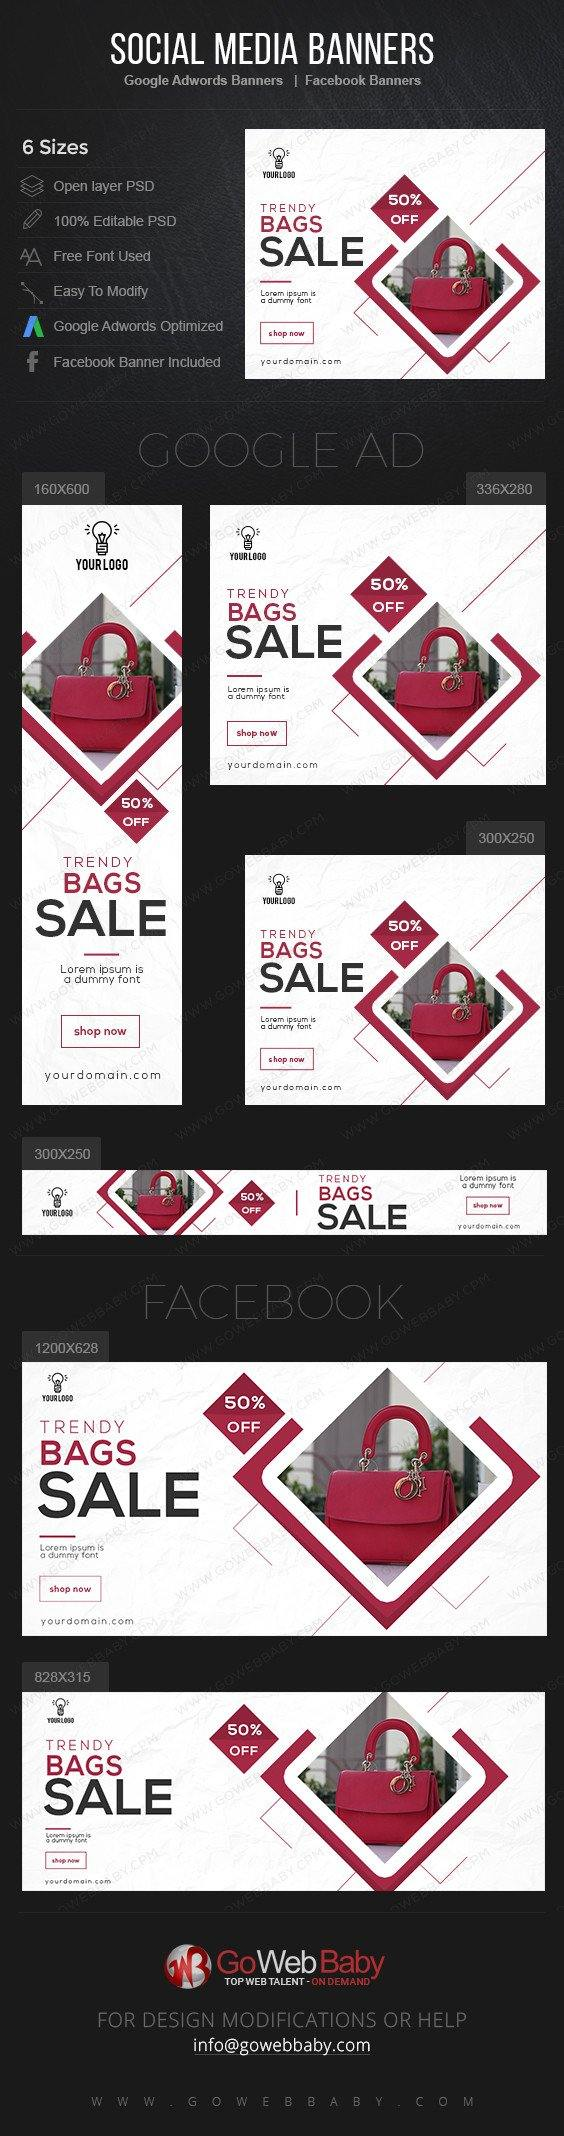 Google Adwords Display Banner With Facebook Banners - Stylish Bags Boutique For Website Marketing - GoWebBaby.Com